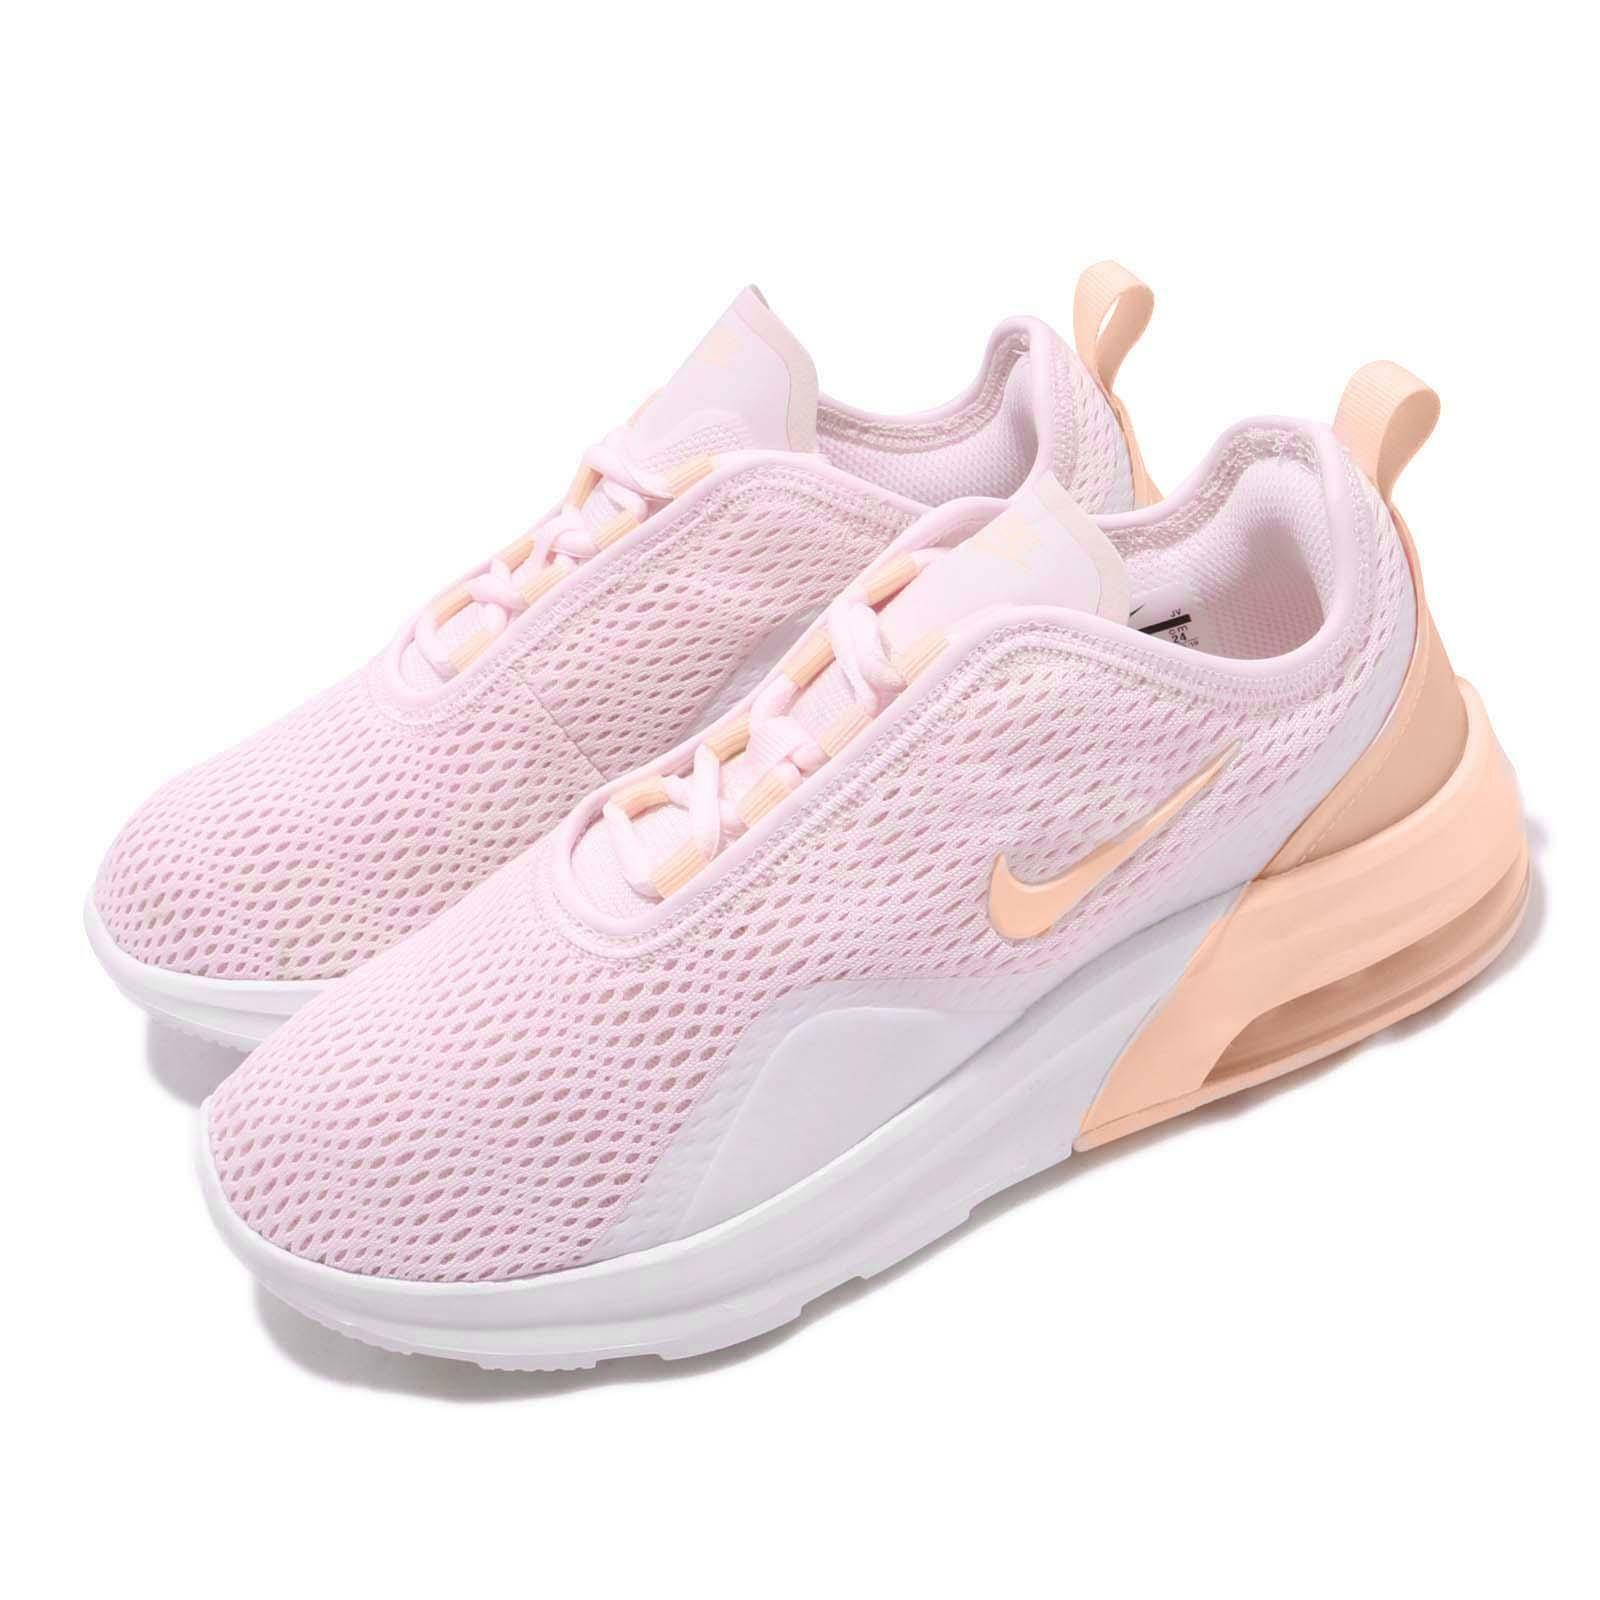 Nike Wmns Air Max Motion 2 Pale Pink Washed  Coral Women Running shoes AO0352-600  outlet